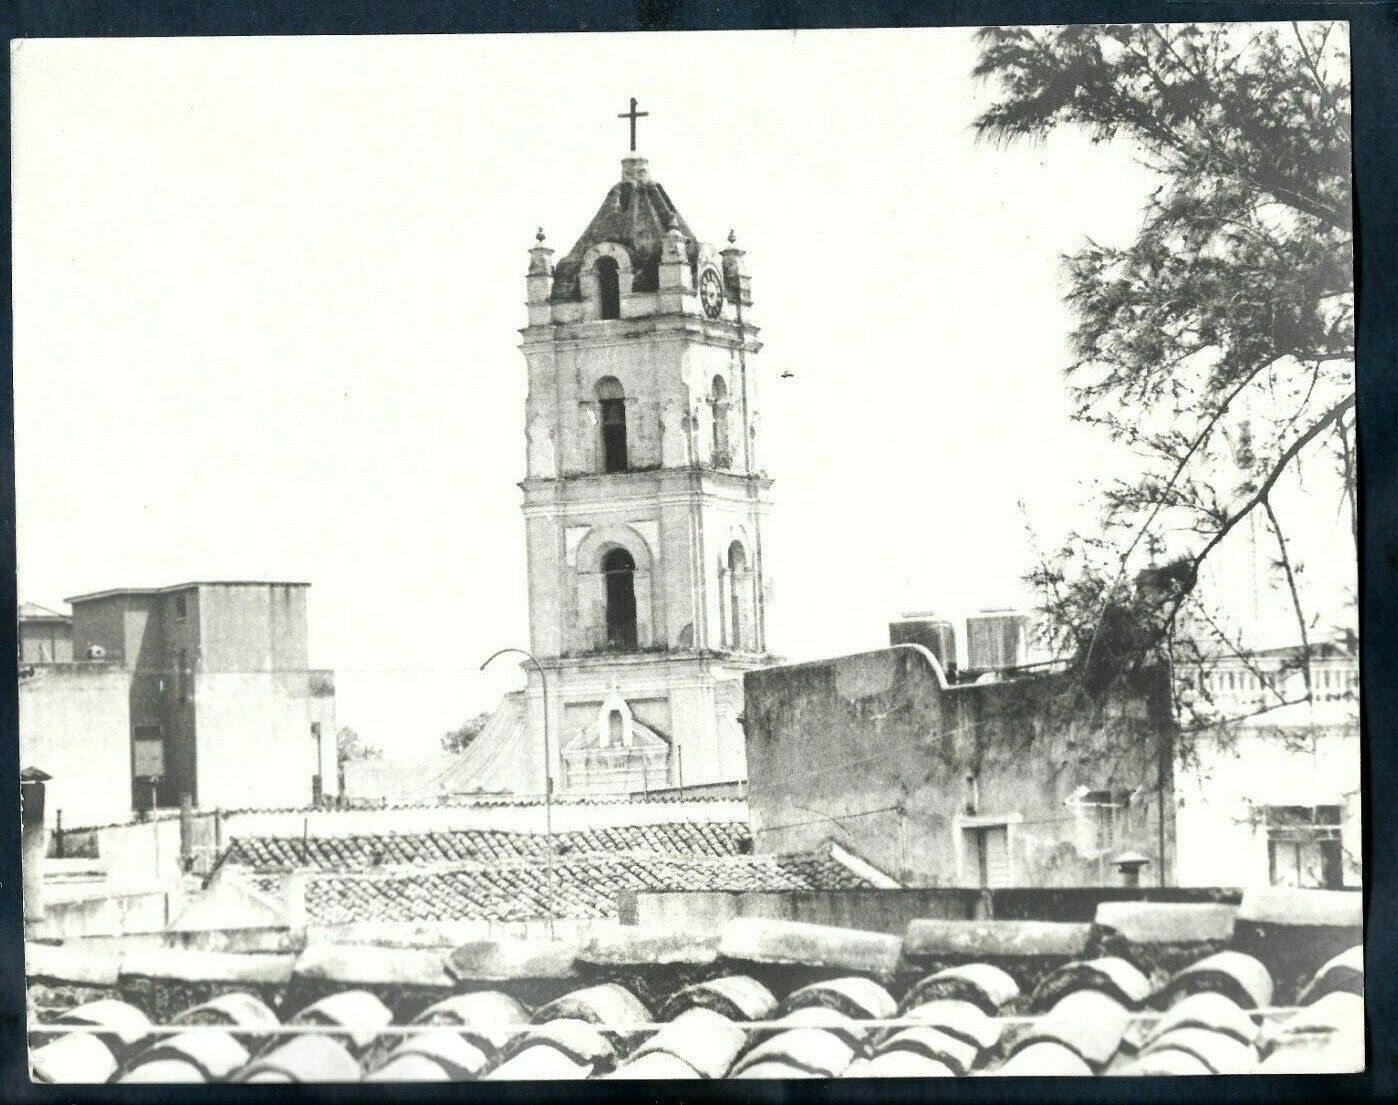 COLONIAL HERITAGE BELL TOWER & TILED ROOFS VIEW CUBA 1960s VINTAGE Photo...